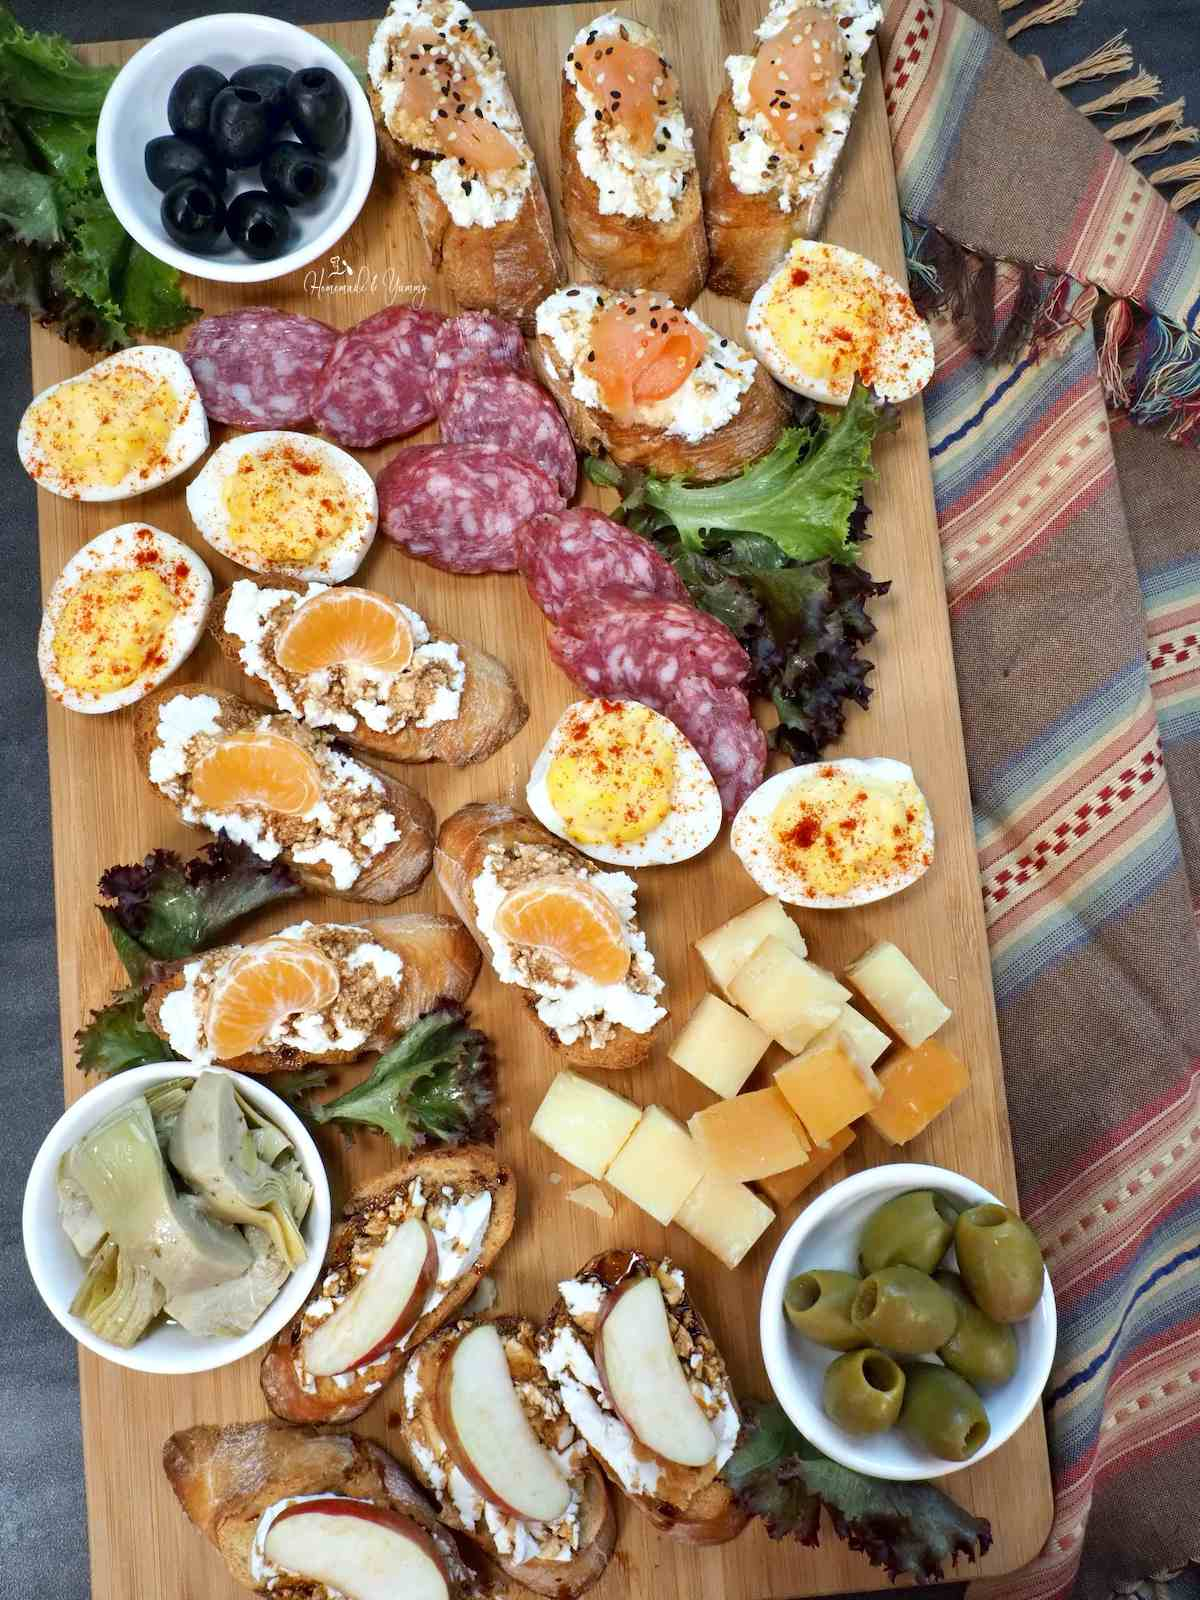 Easy Crostini Platter with a selection of appetizers.